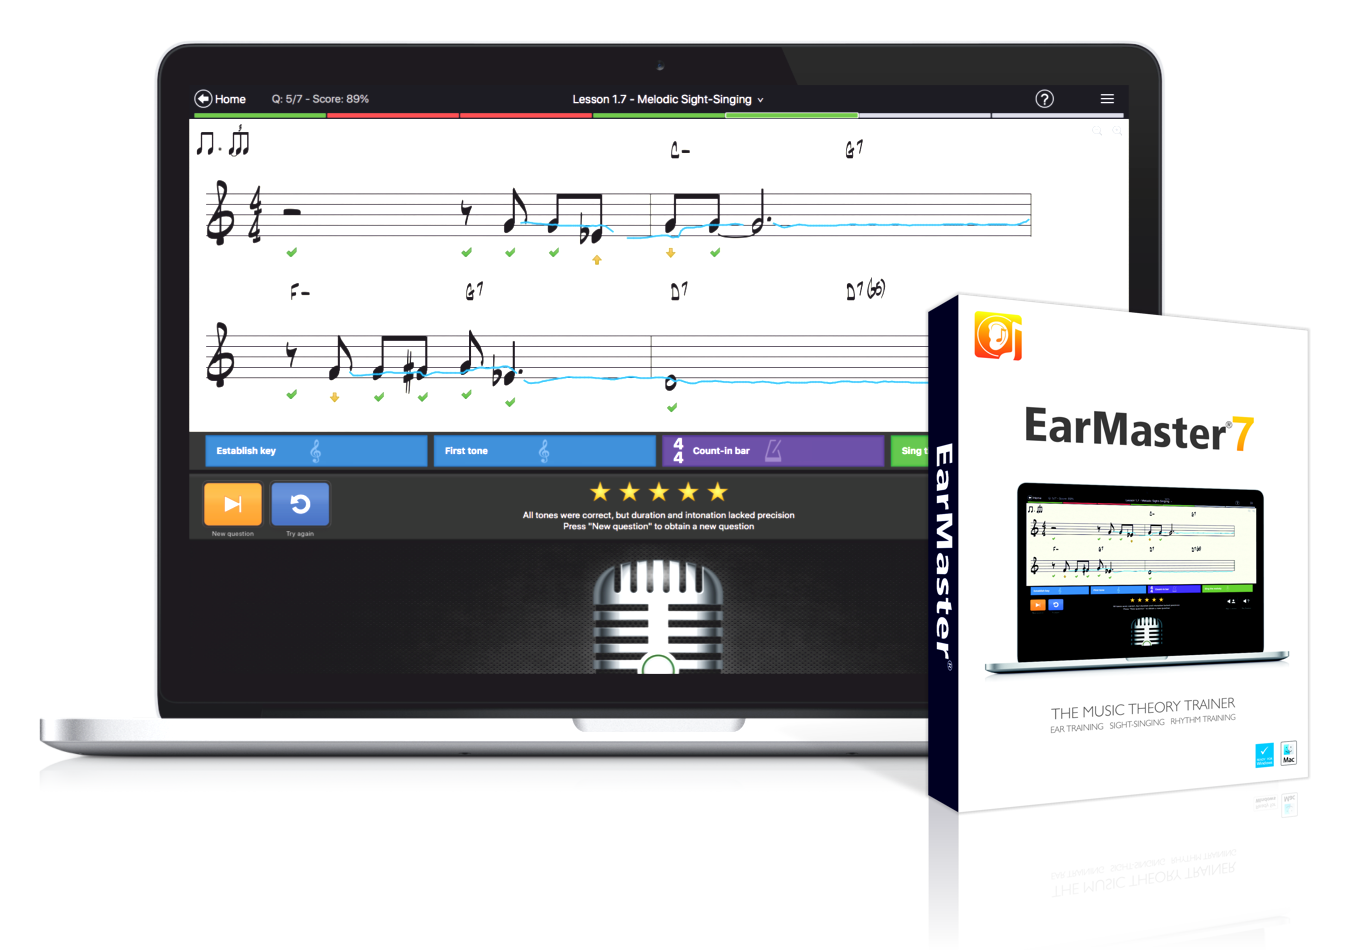 EarMaster 7 - Music Theory Trainer with ear training, sight-singing practice and rhythm study.